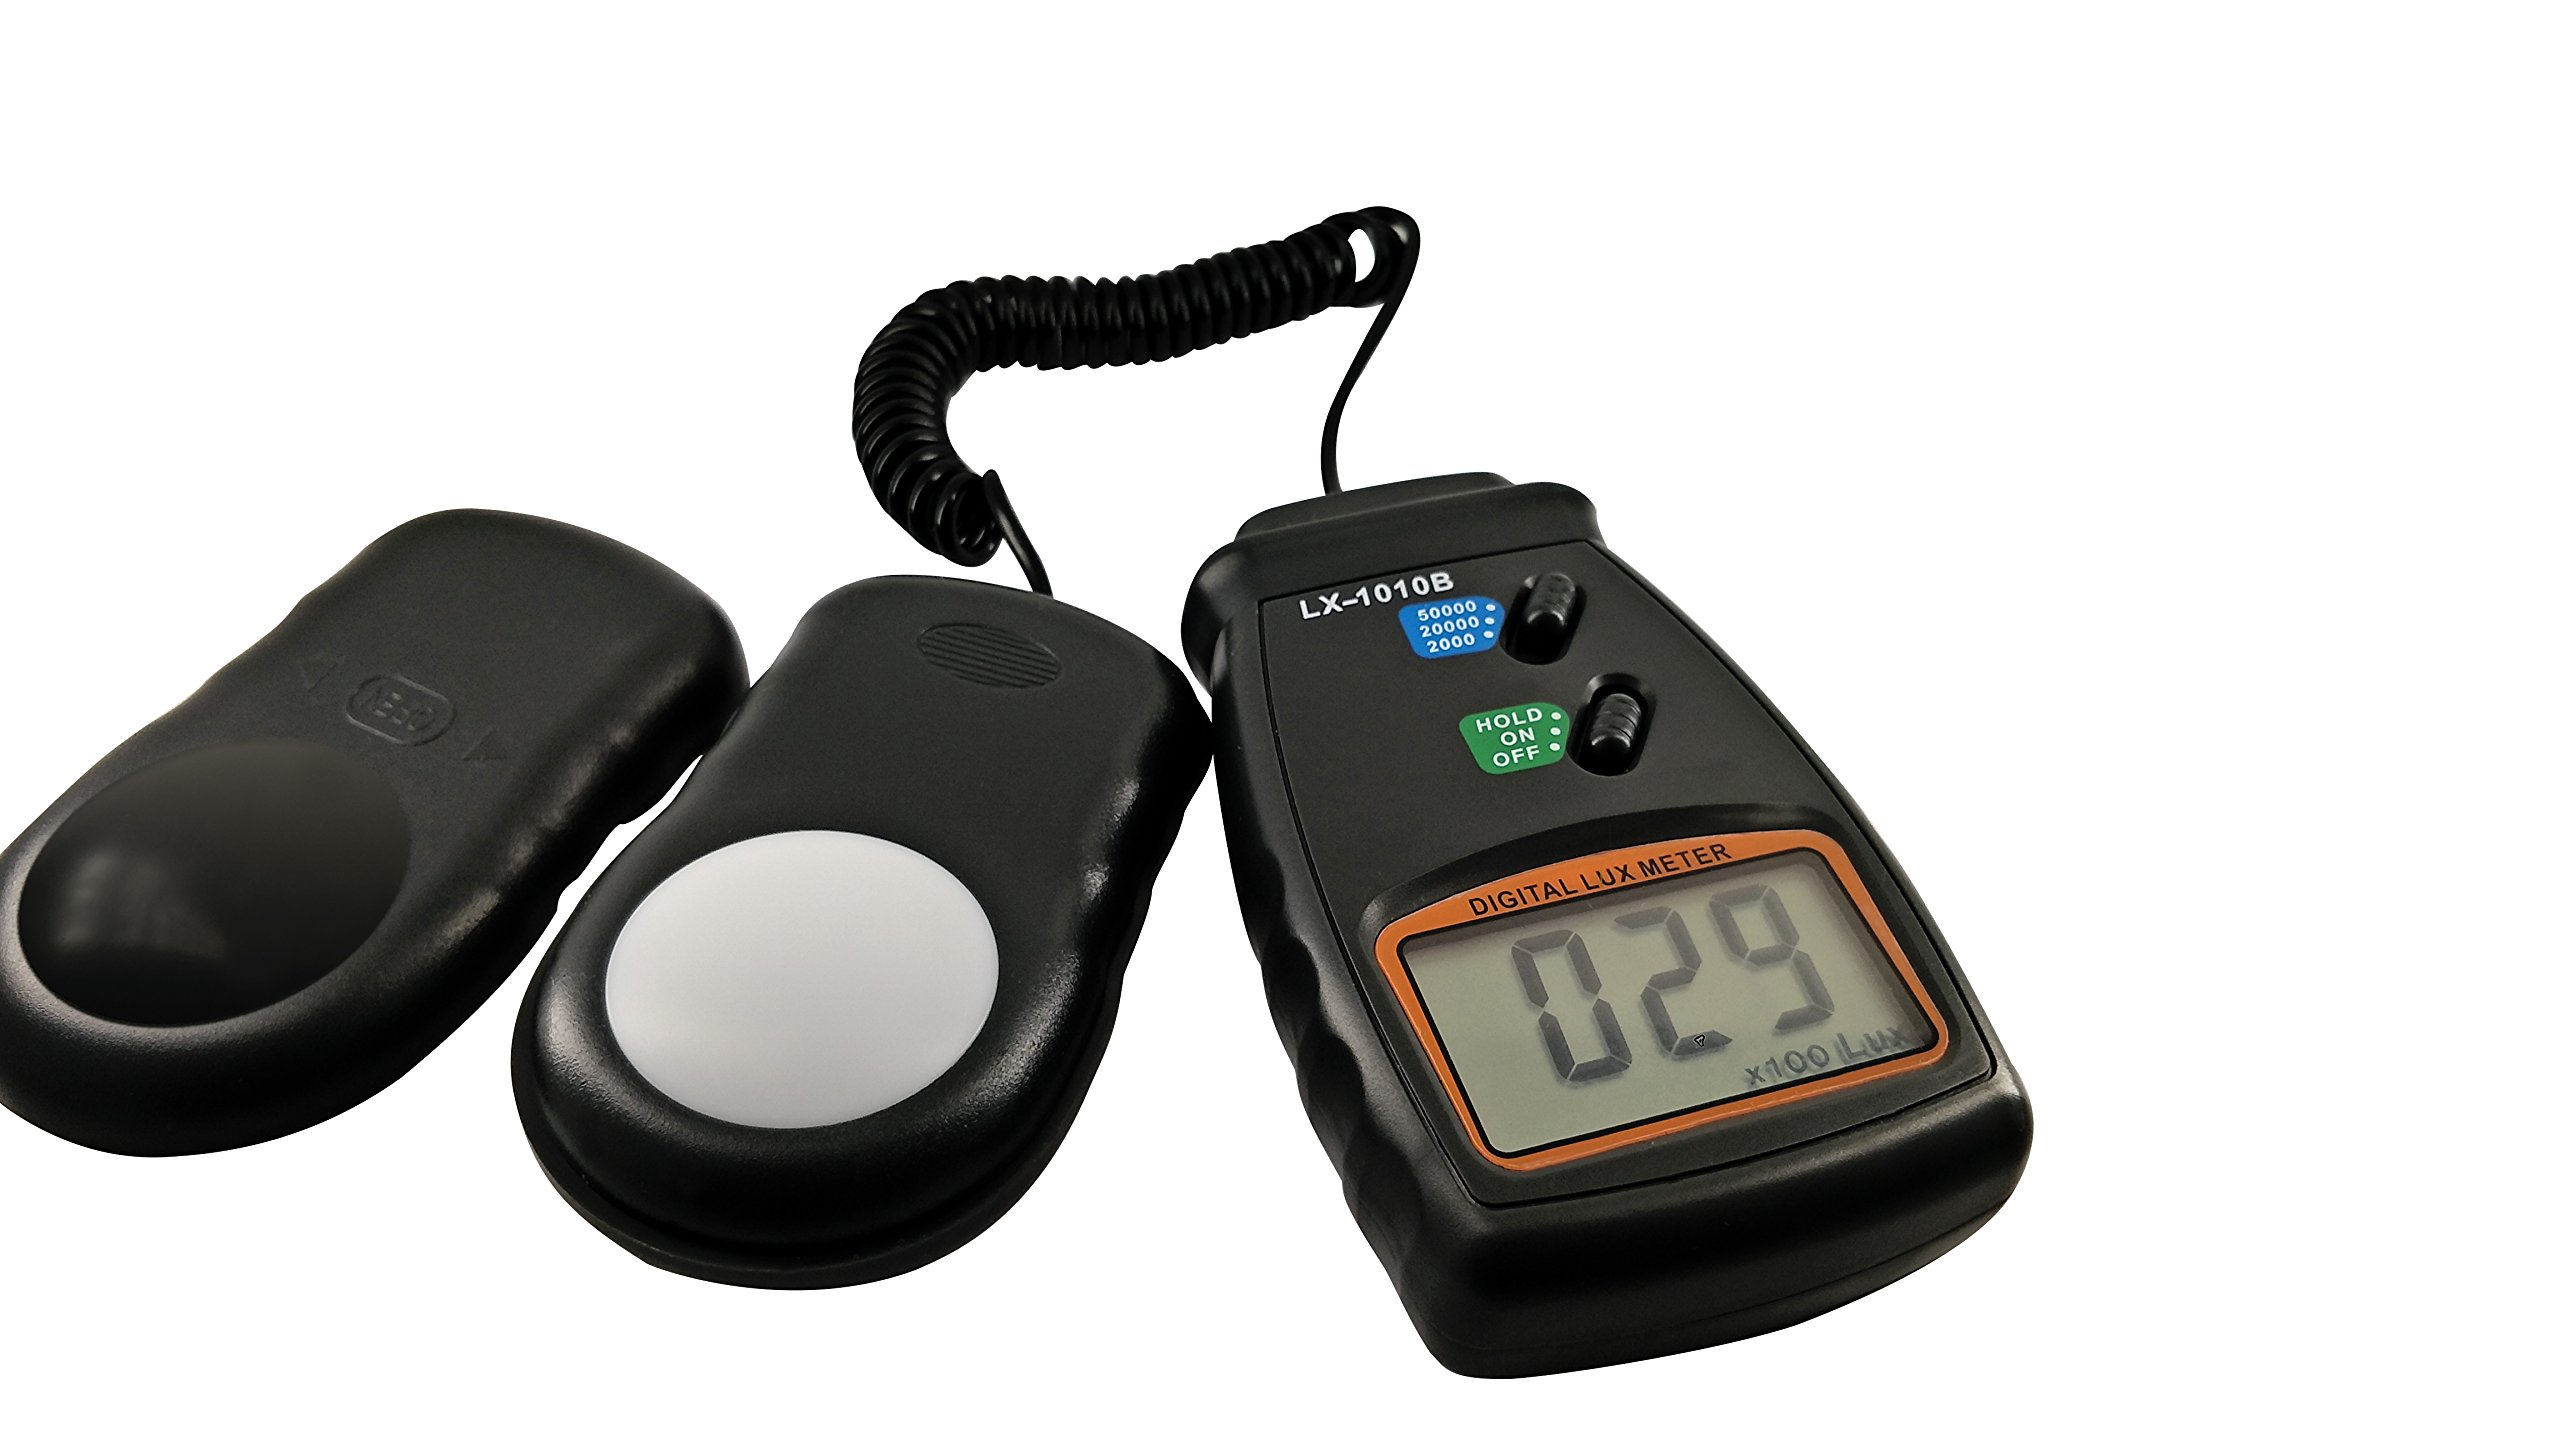 CityFarmer Light Meter, Digital Luxmeter, with LCD Display - Range up to 50,000 Lux, with Price Reduction, Great for Gardening, Farming, hydroponics, Indoor, Outdoor, one Year Limited Warranty by CityFarmer